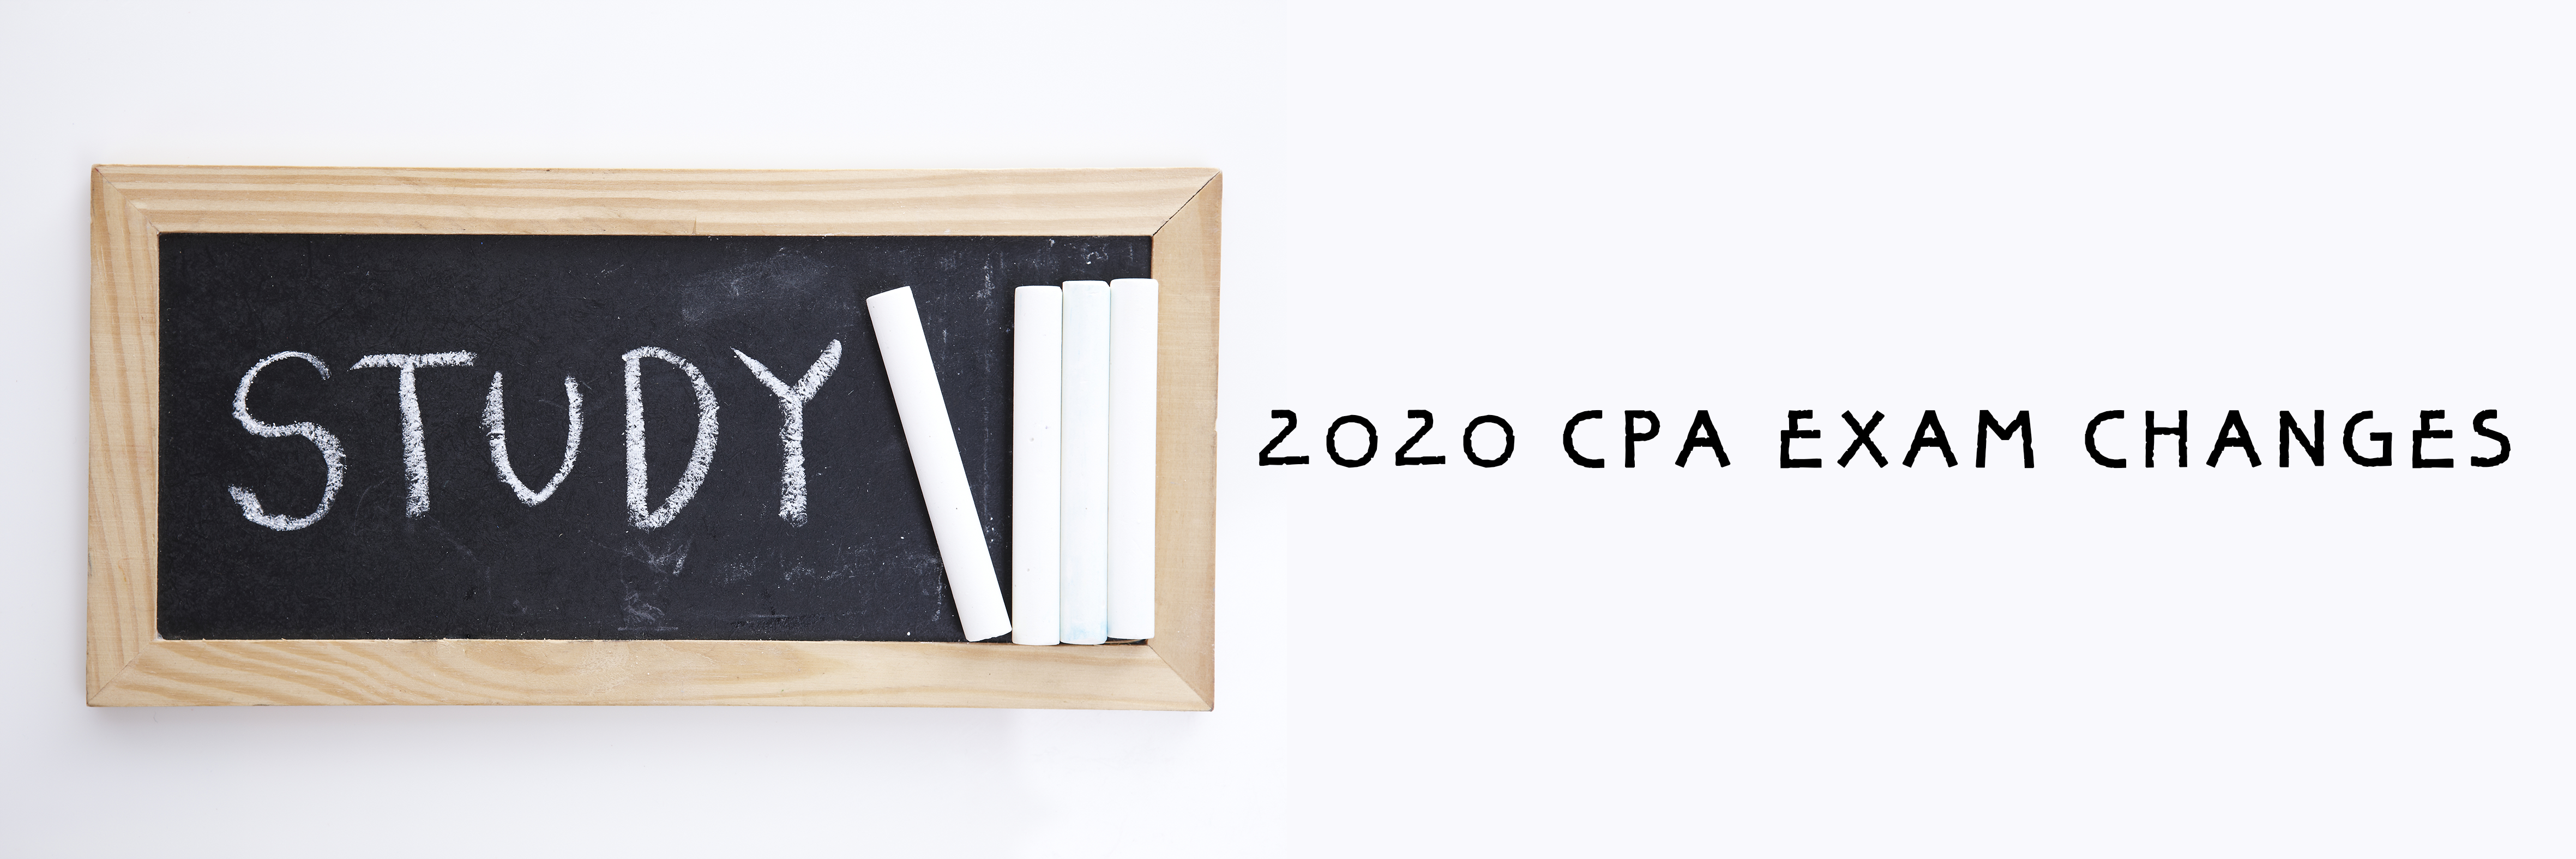 2020 CPA EXAM CHANGES